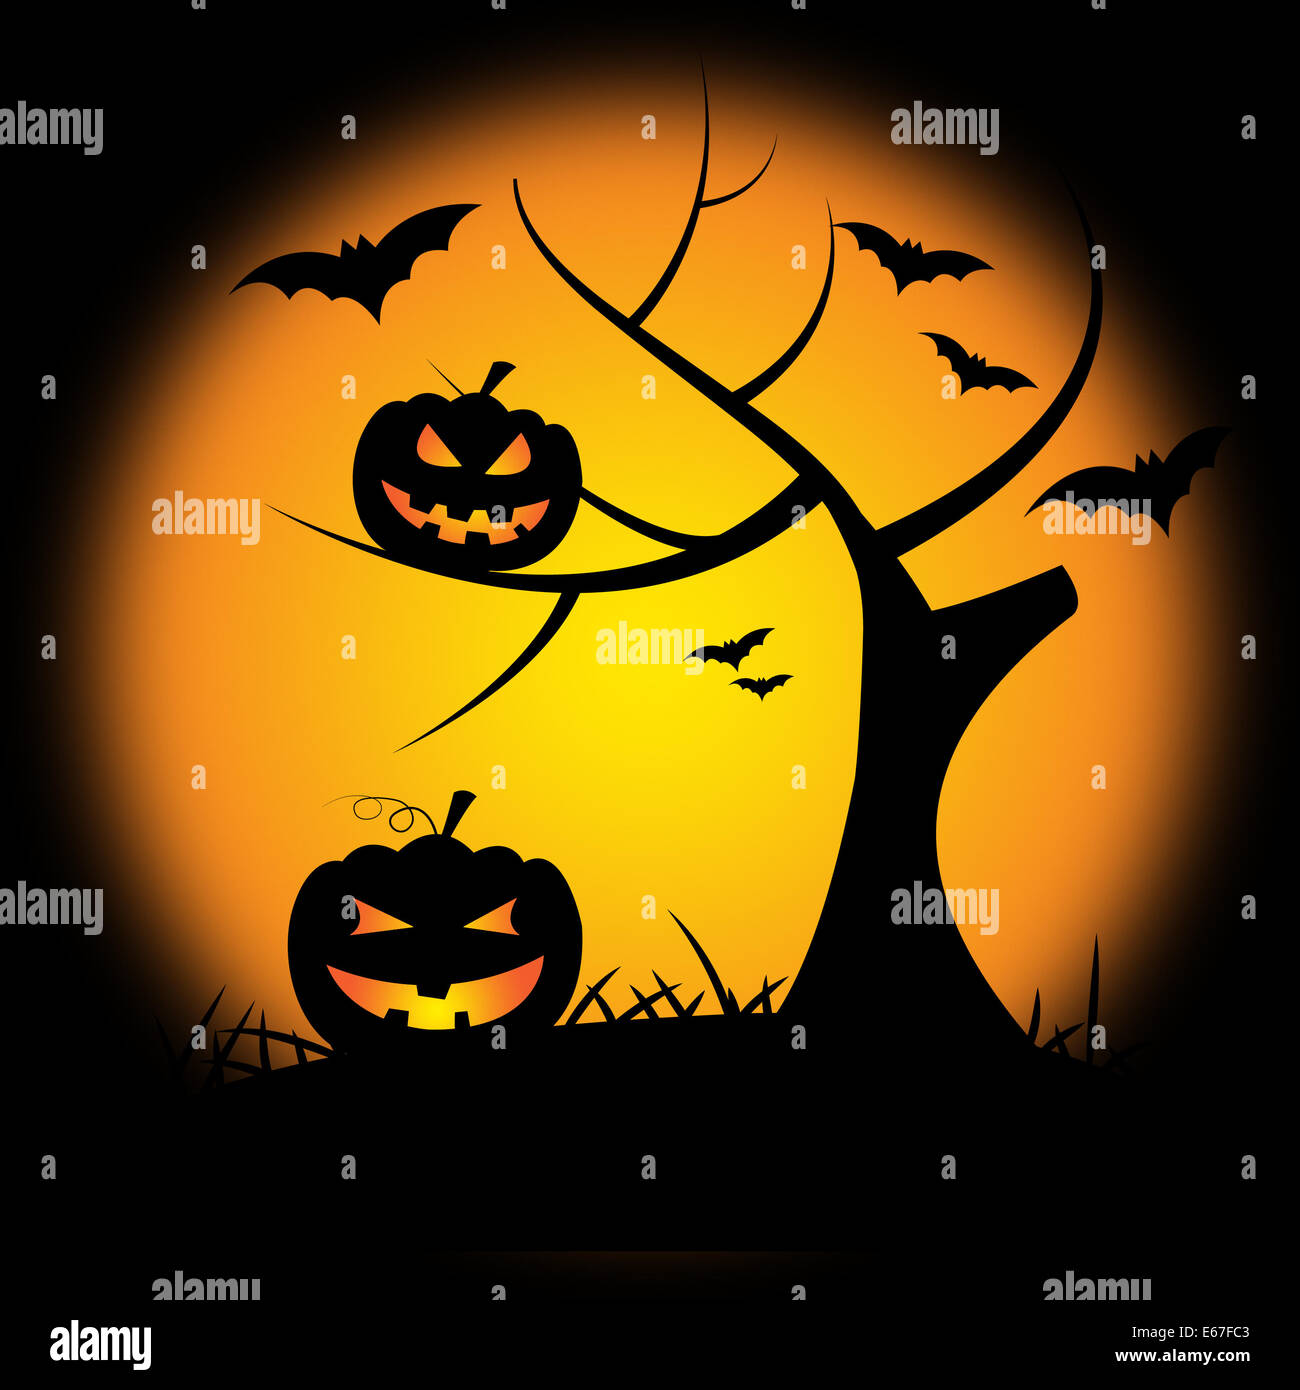 Tree Halloween Meaning Trick Or Treat And Pumpkin Patch Stock ...